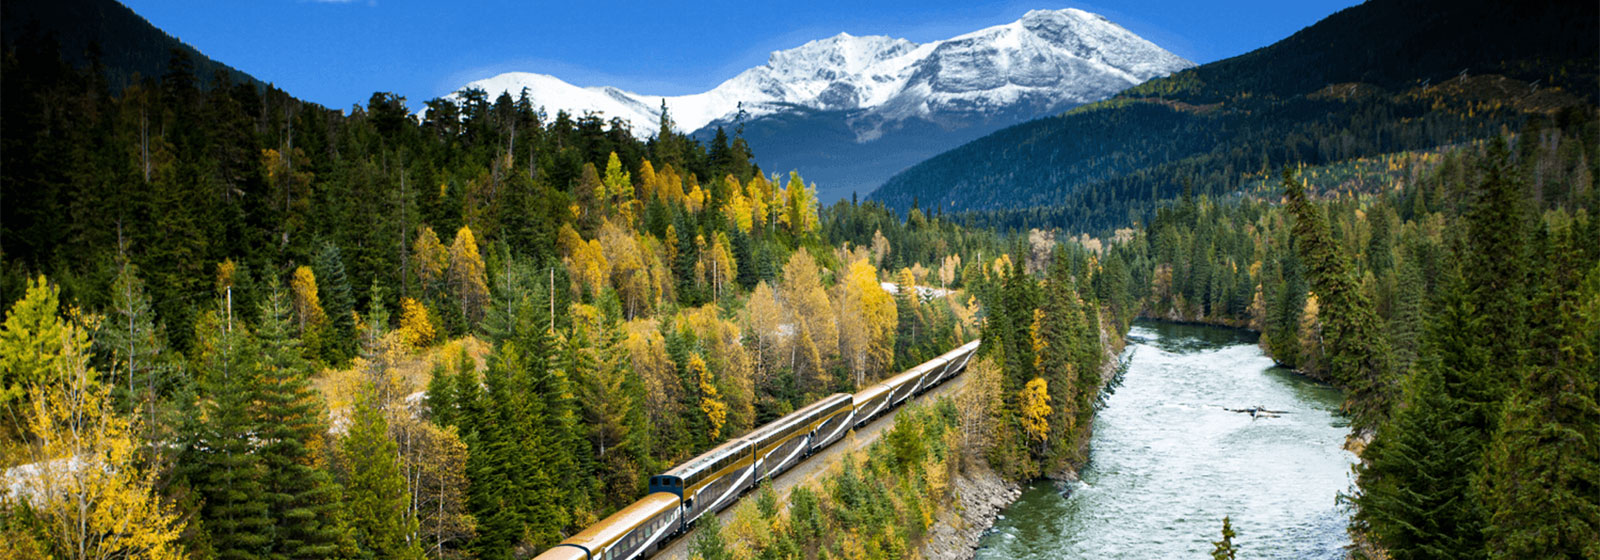 Rocky Mountaineer River View